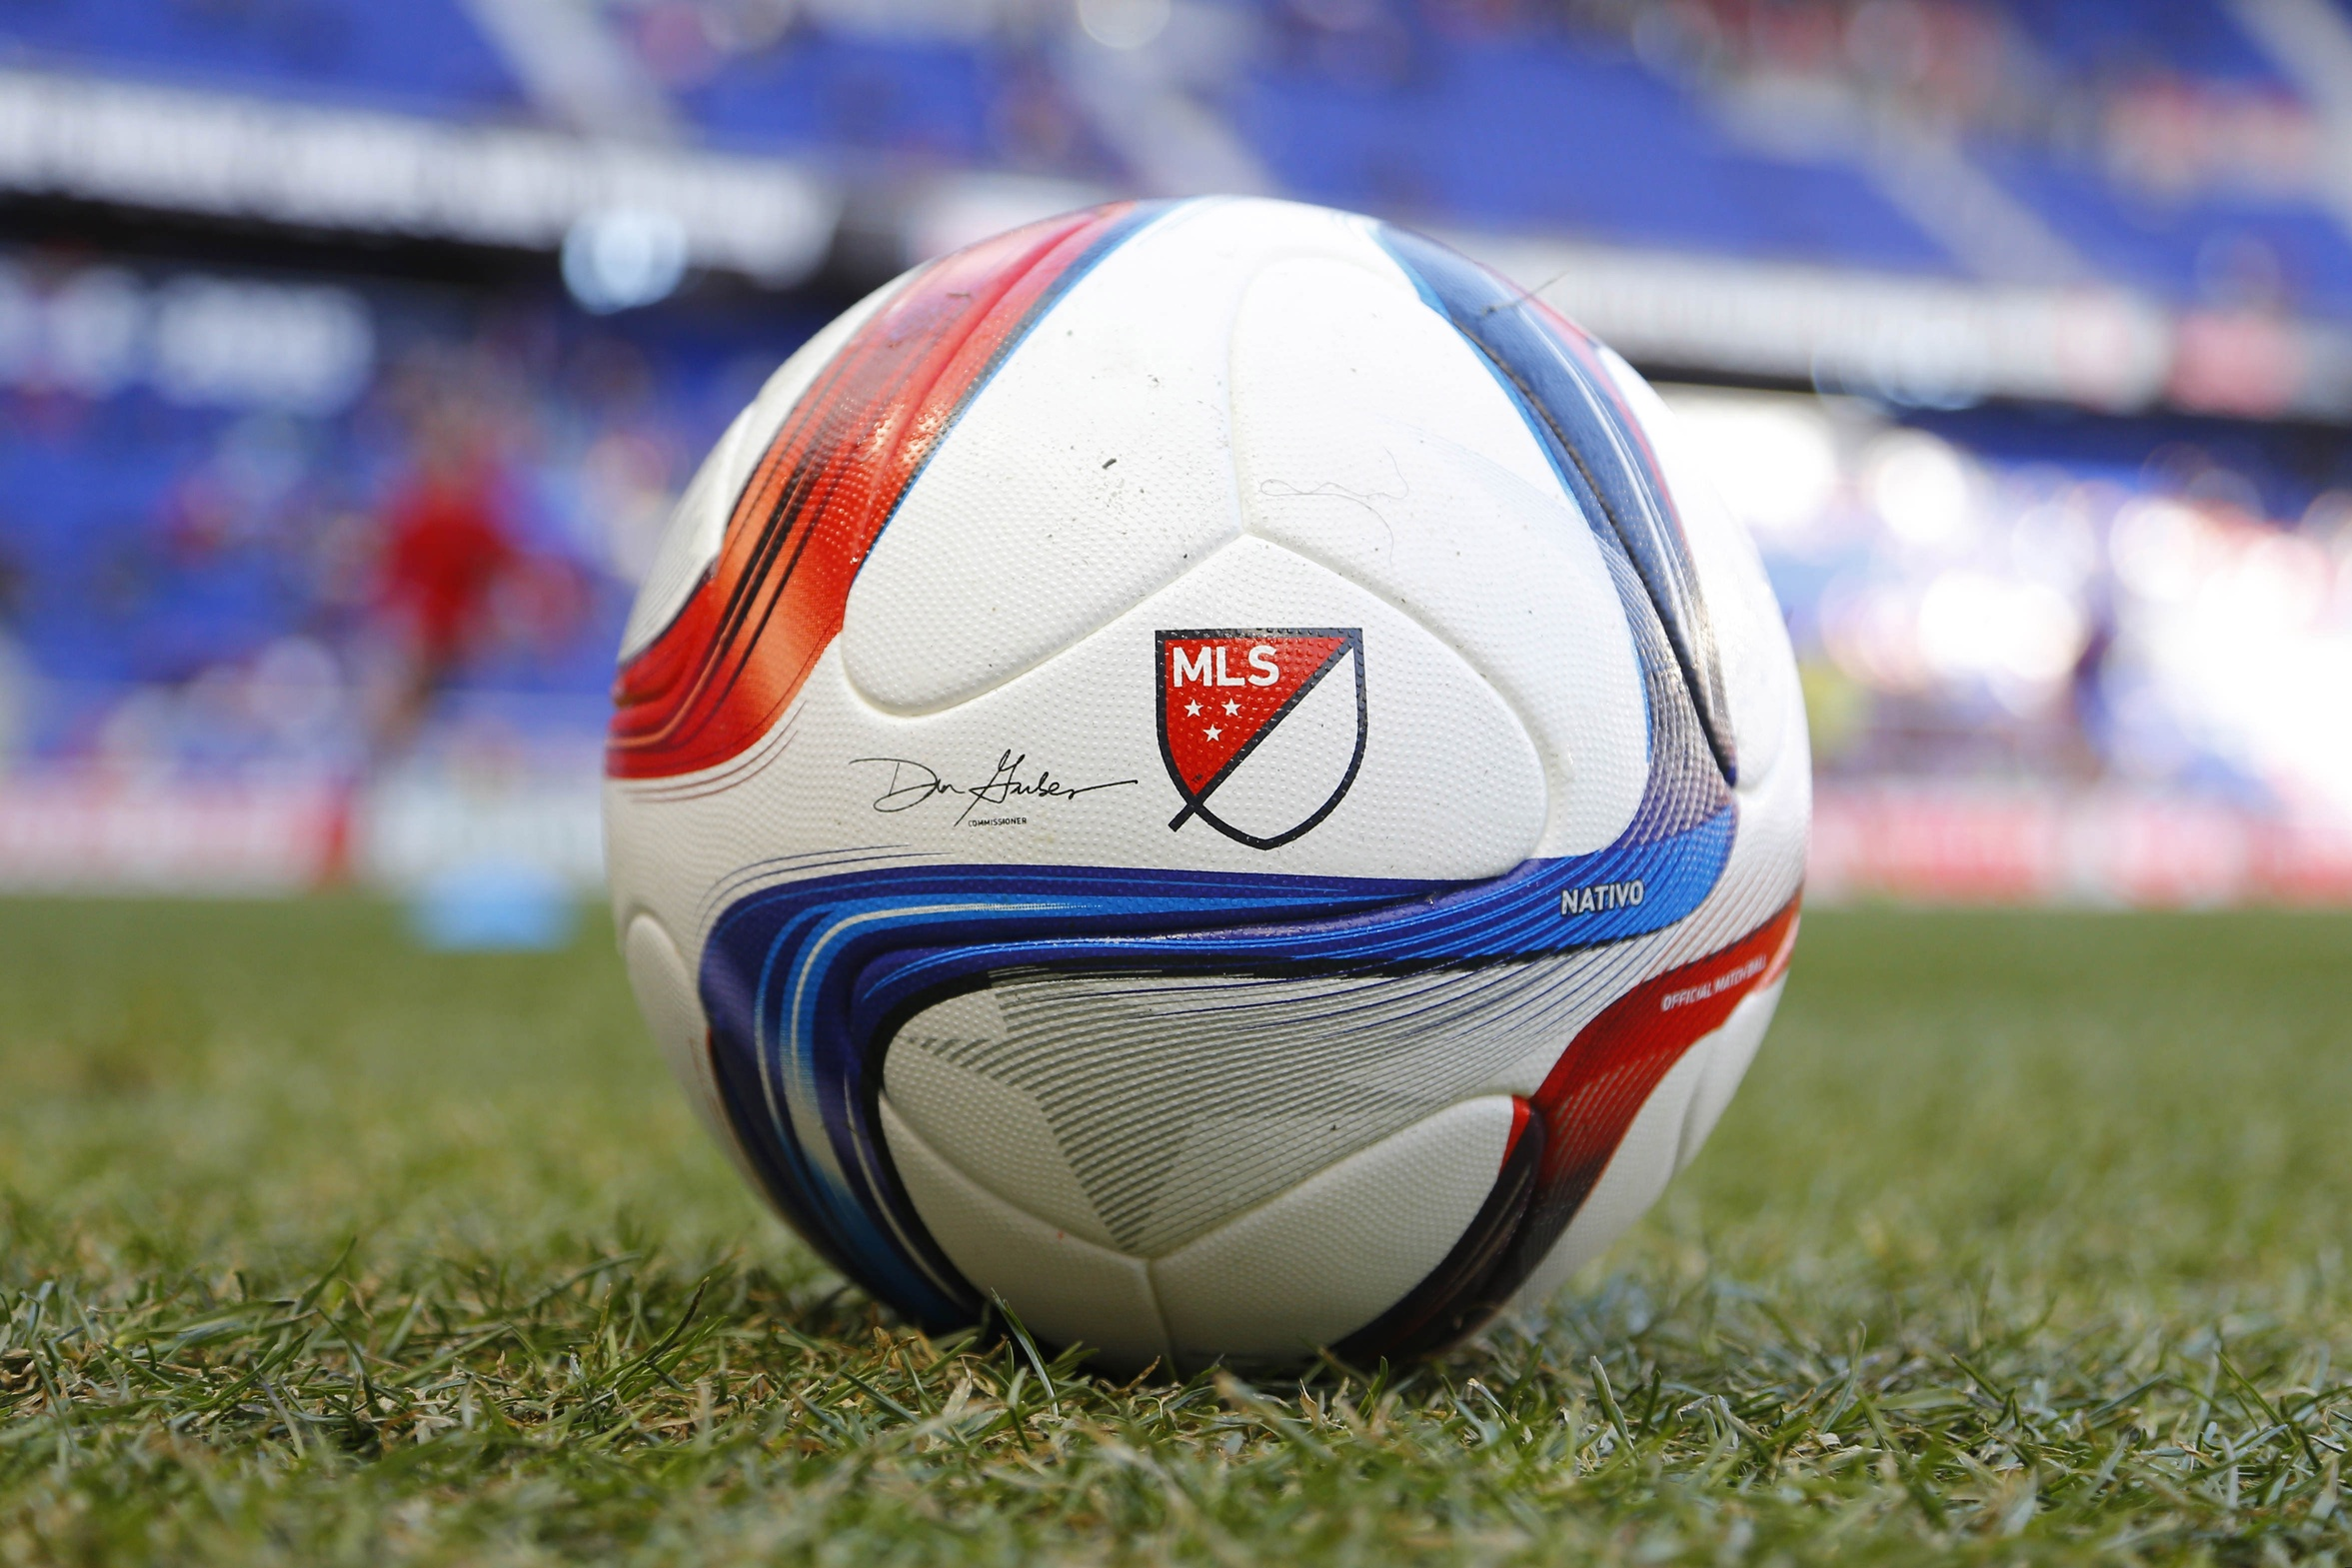 MLS average attendances increase 13% in 2015